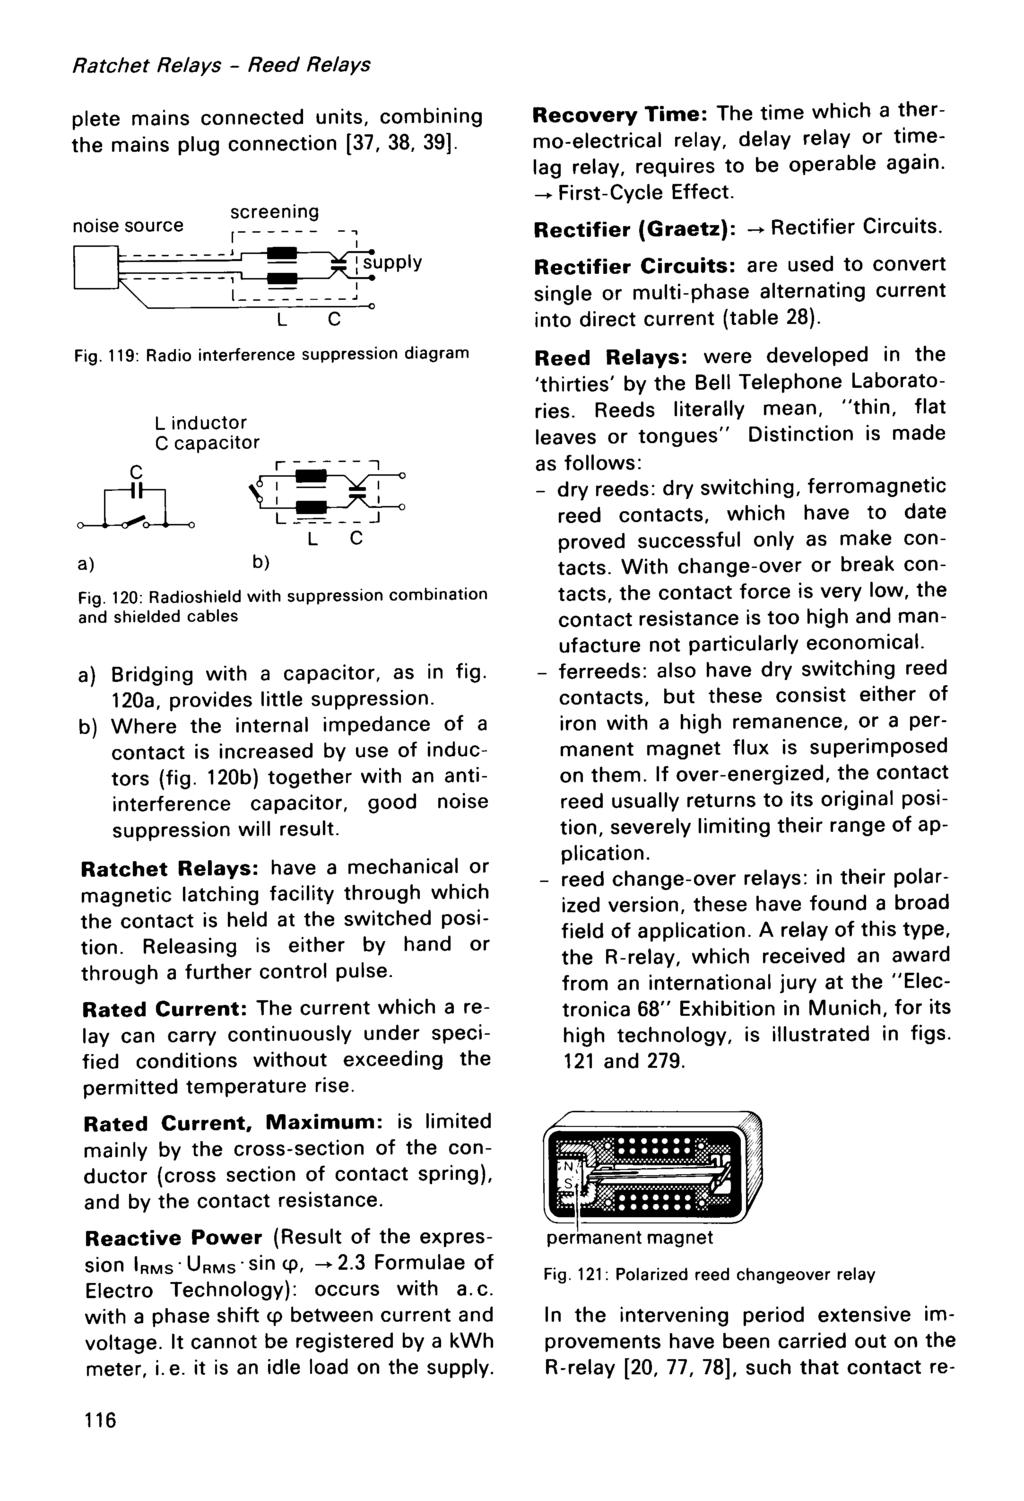 Hans Sauer Modern Re La Y Technology Pdf Reed Switch Wiring With Relays Moreover Latching Relay Circuit Diagram Ratchet Plete Mains Connected Units Combining The Plug Connection